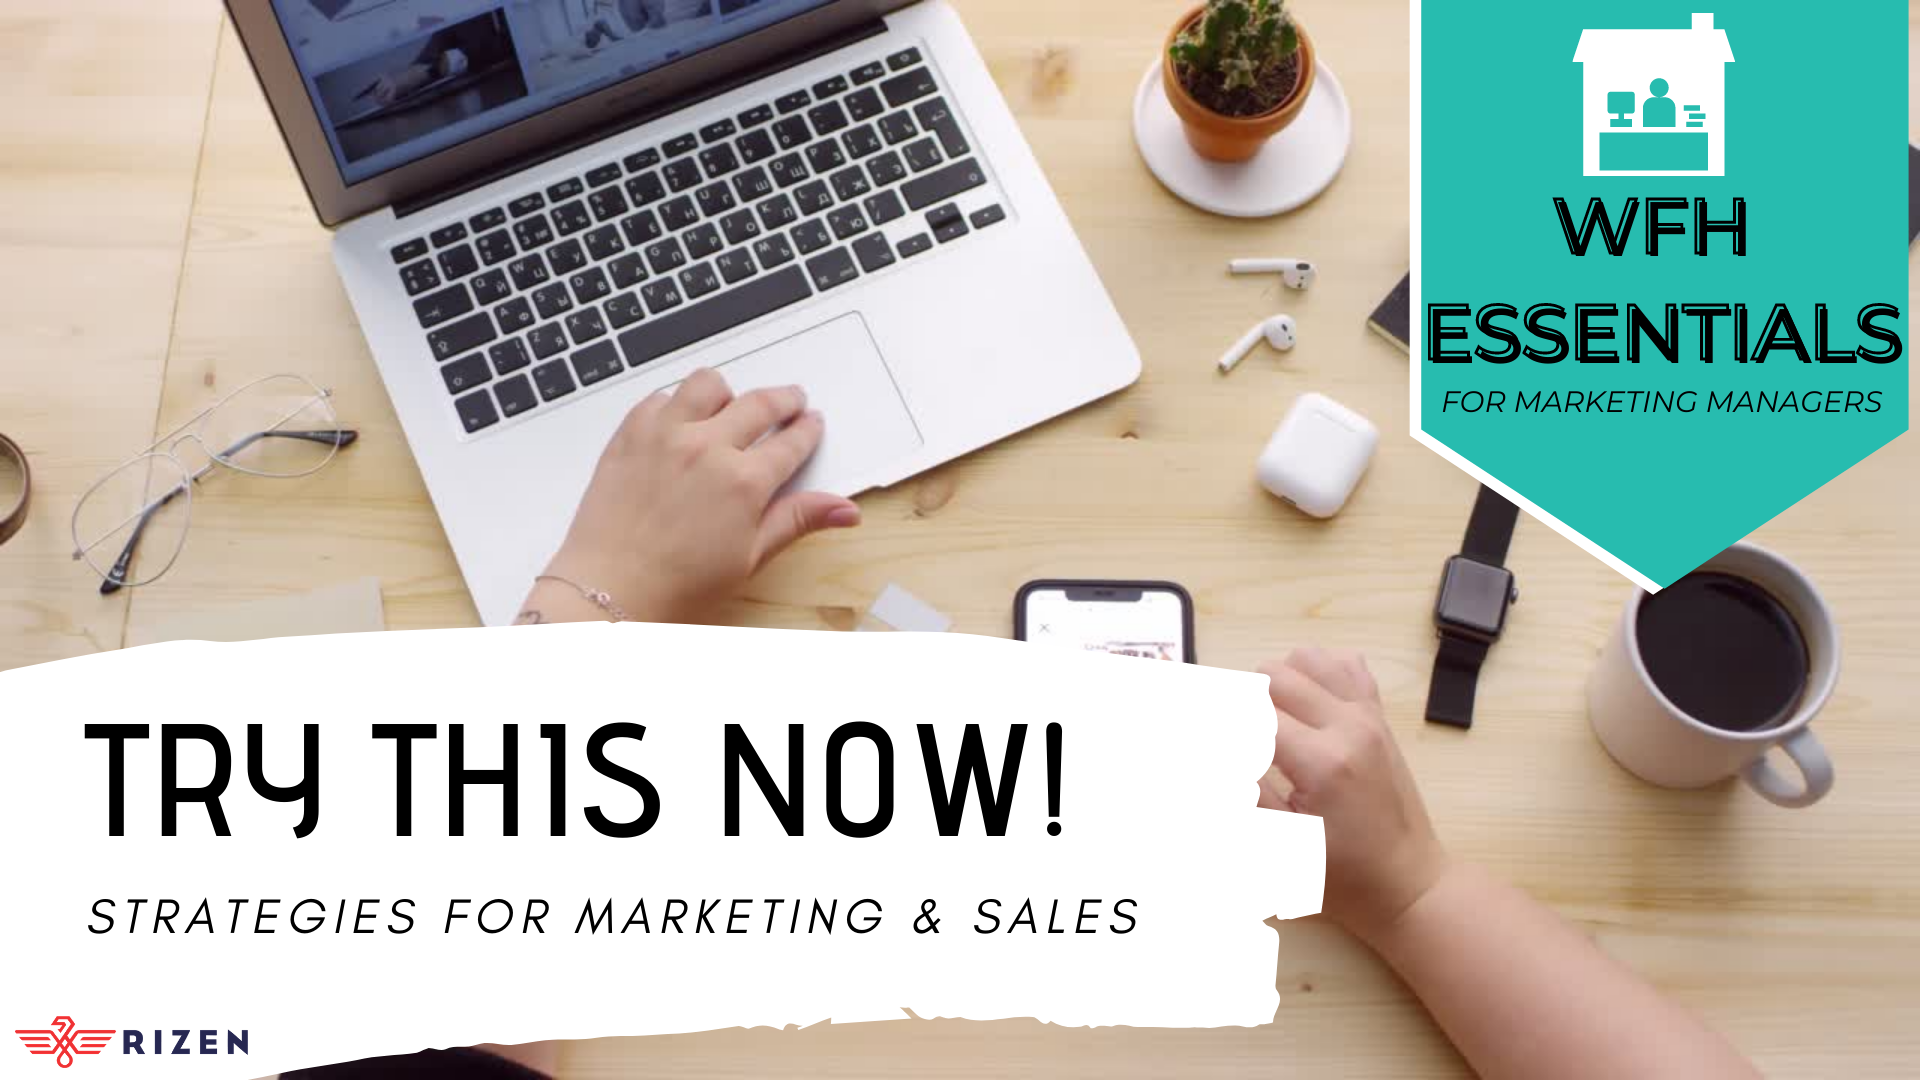 Try this now WFH essentials for marketing managers_1